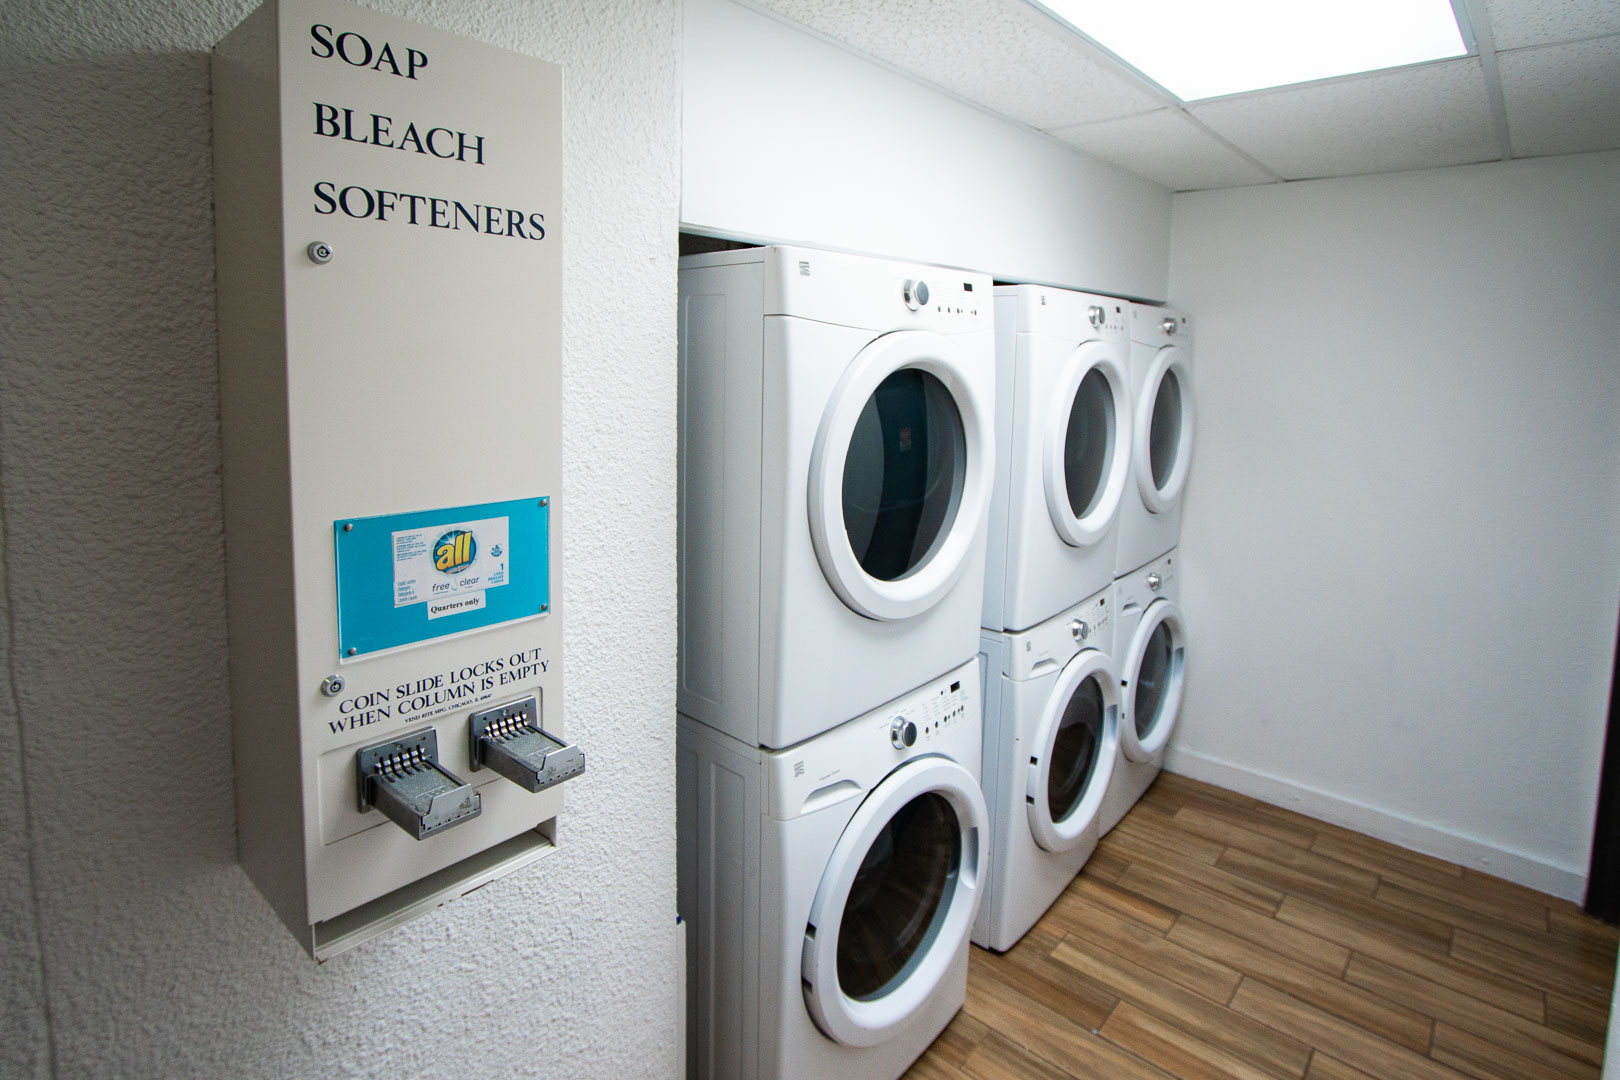 Resort amenities include laundry facilities at VRI's Bay Club of Sandestin in Florida.